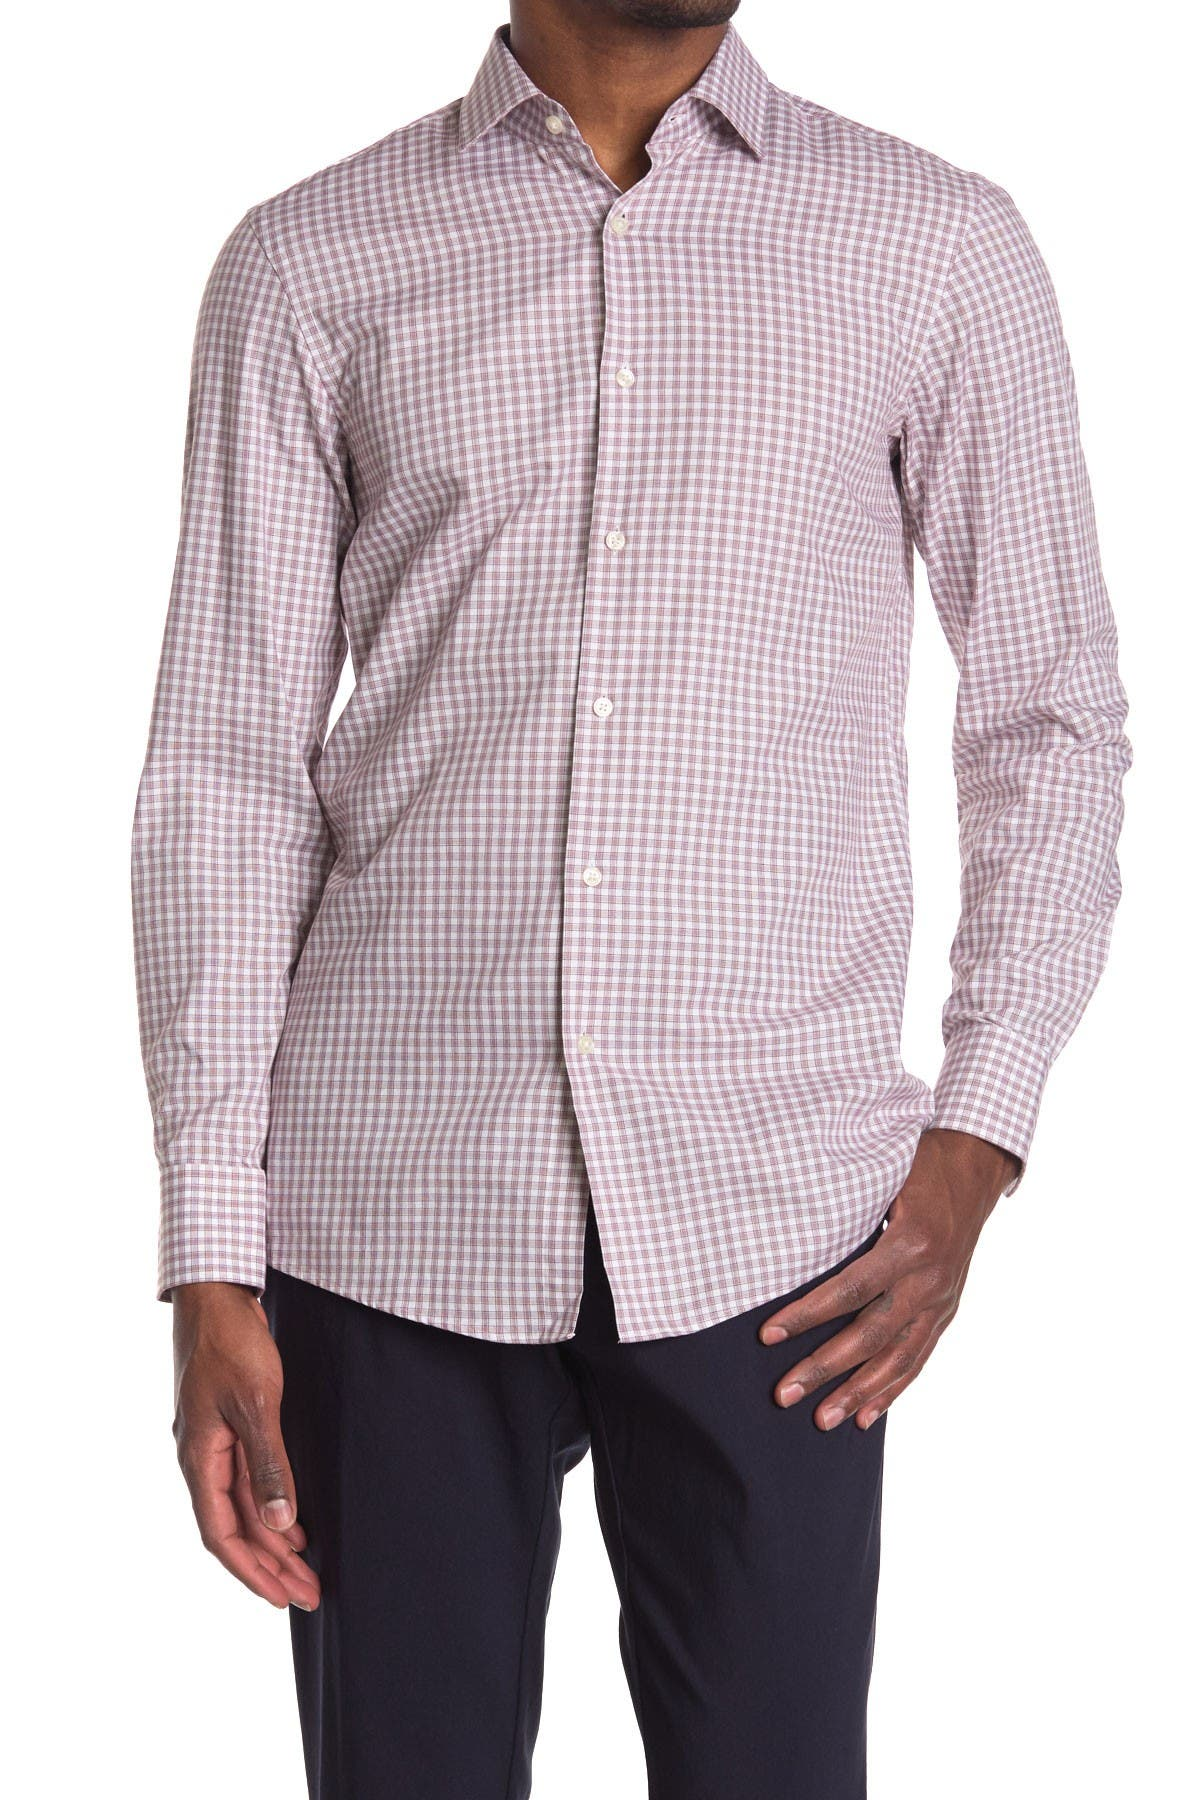 Image of BOSS Marley Sharp Fit Dress Shirt